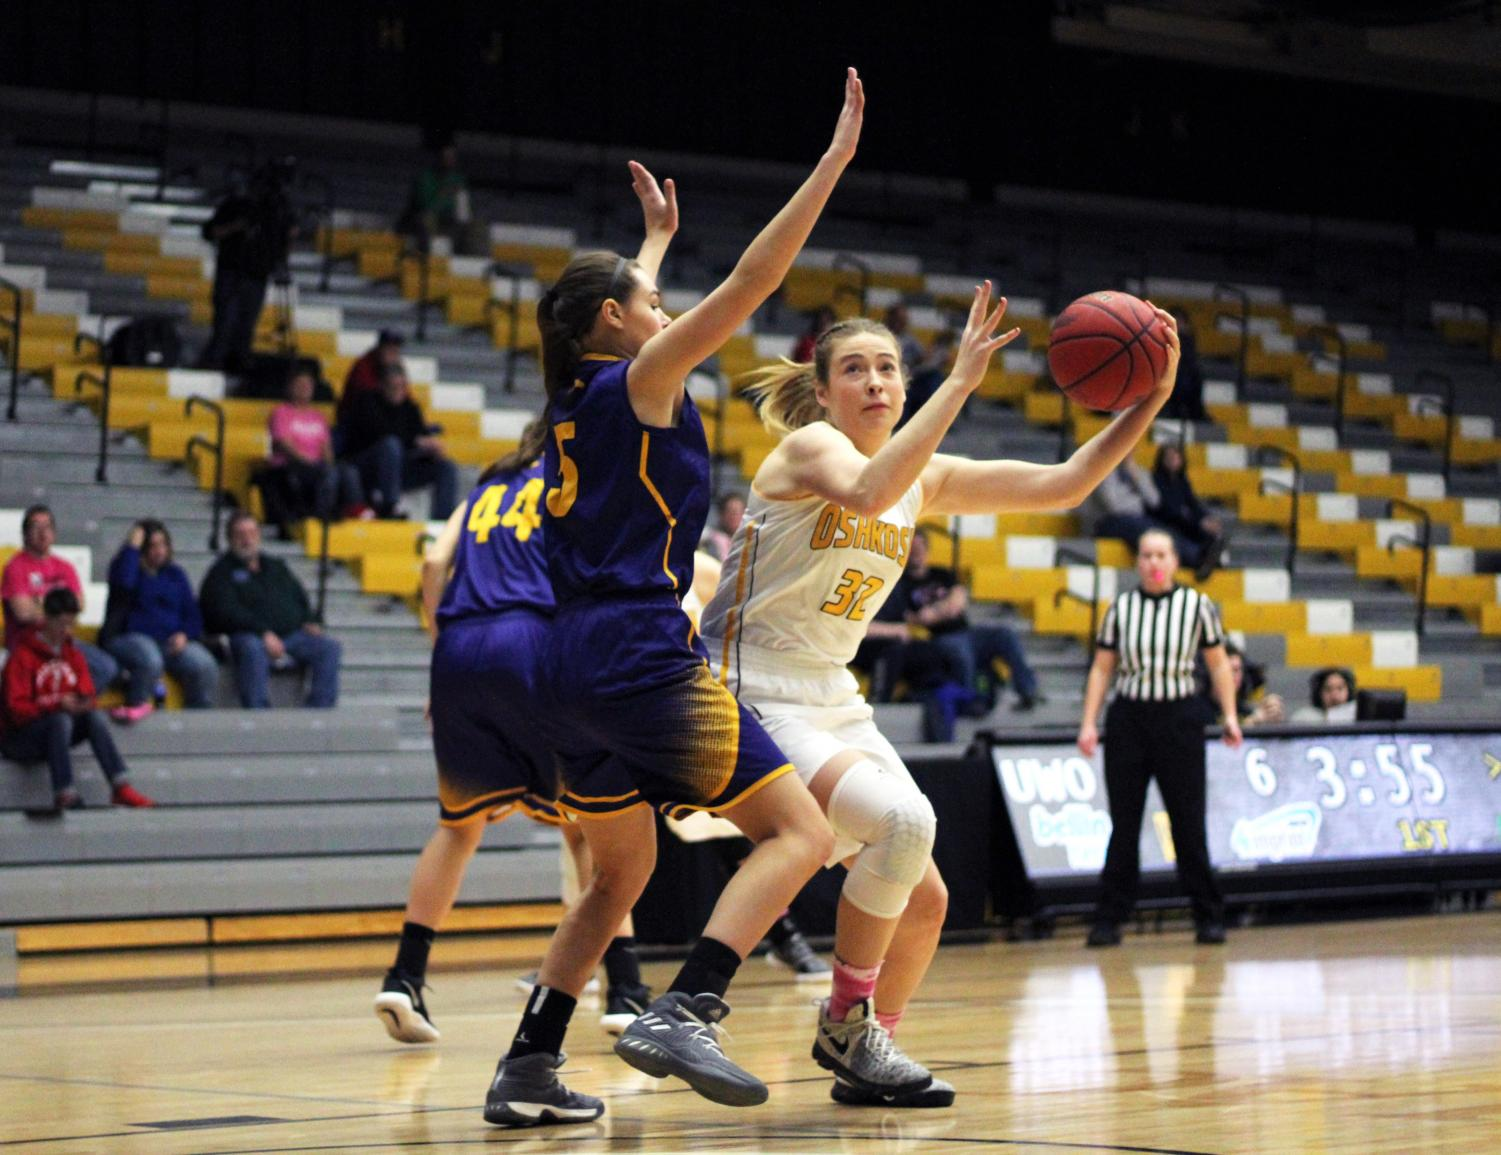 Senior forward Madeline Staples receives the ball in the post and works to make a move towards the basket against UW-Stevens Point on Wednesday. Staples averages five points per game on 42.4 percent shooting this season.